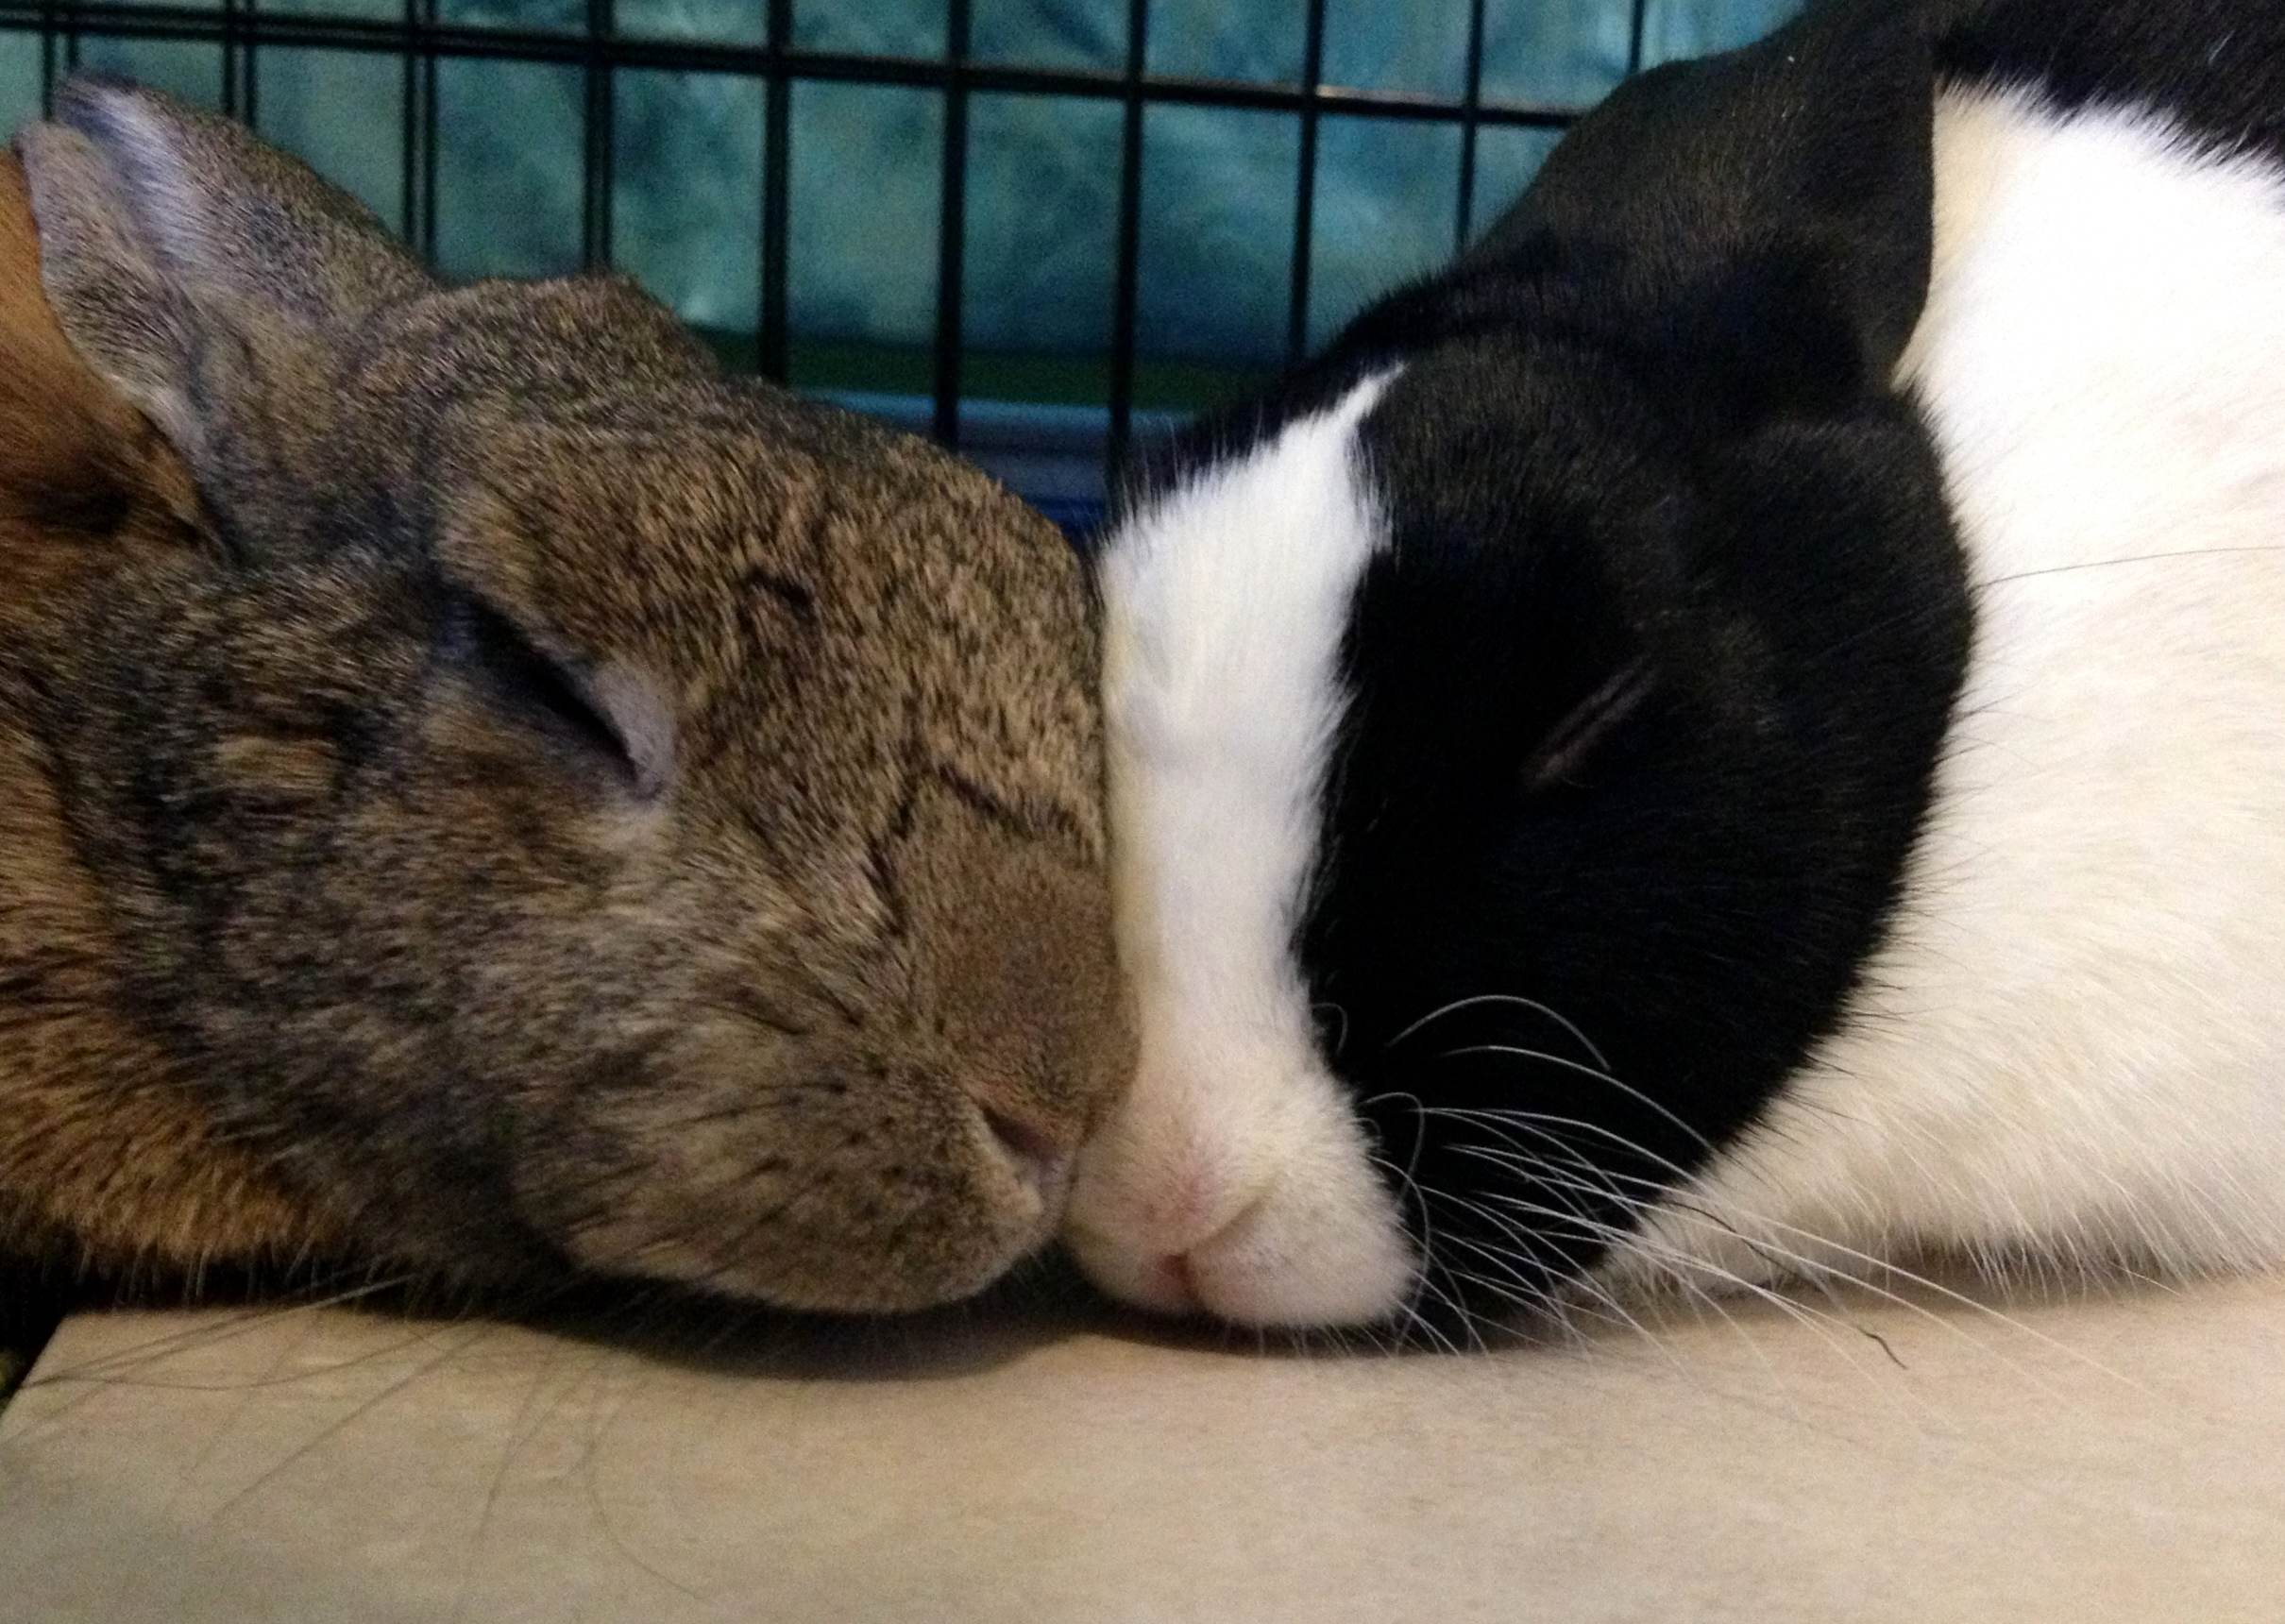 Bunnies Have a Sweet Snuggle